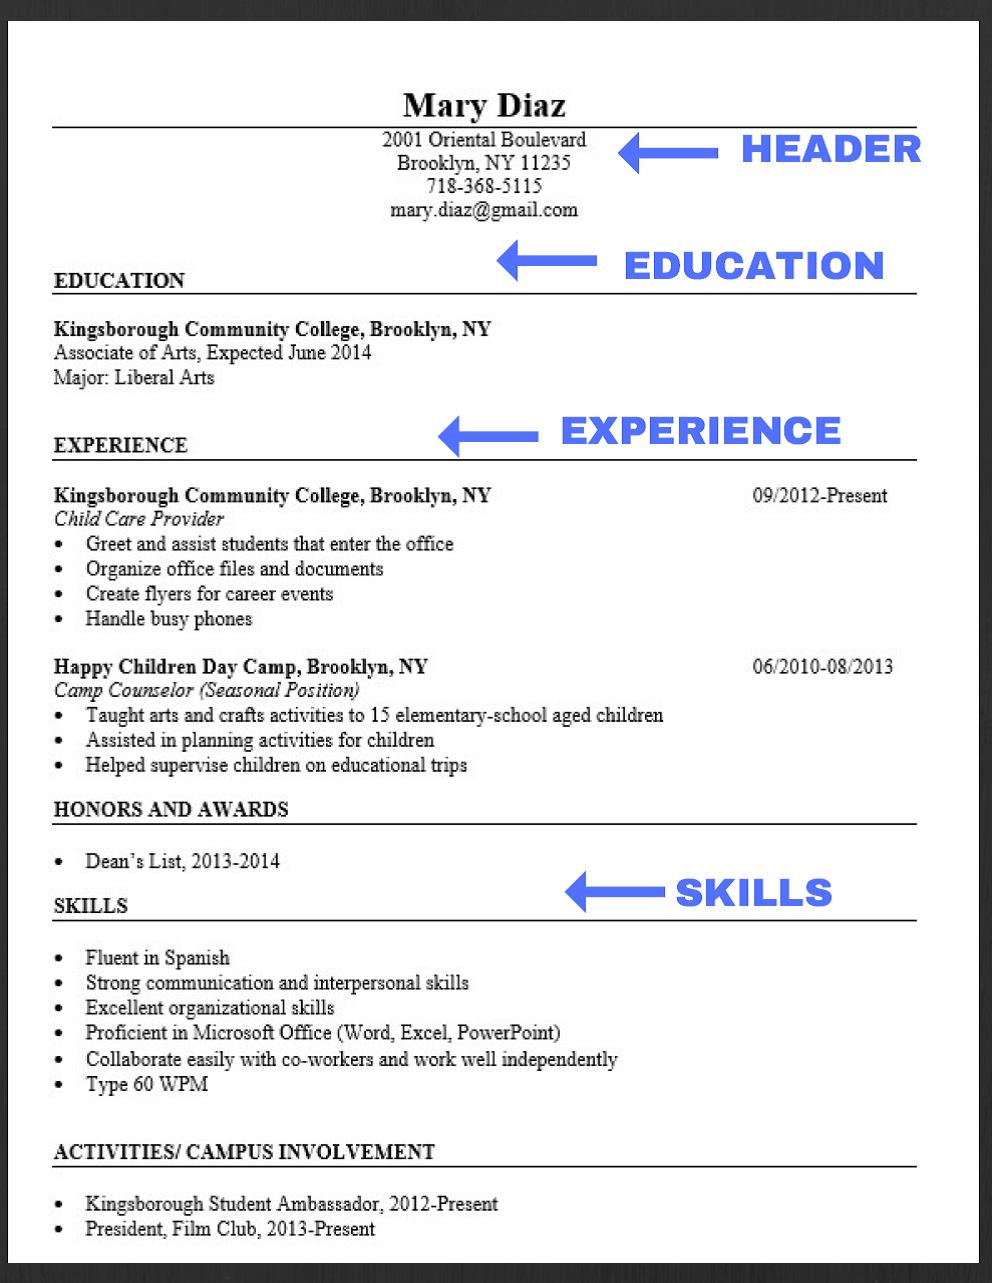 Elements of a professional resume